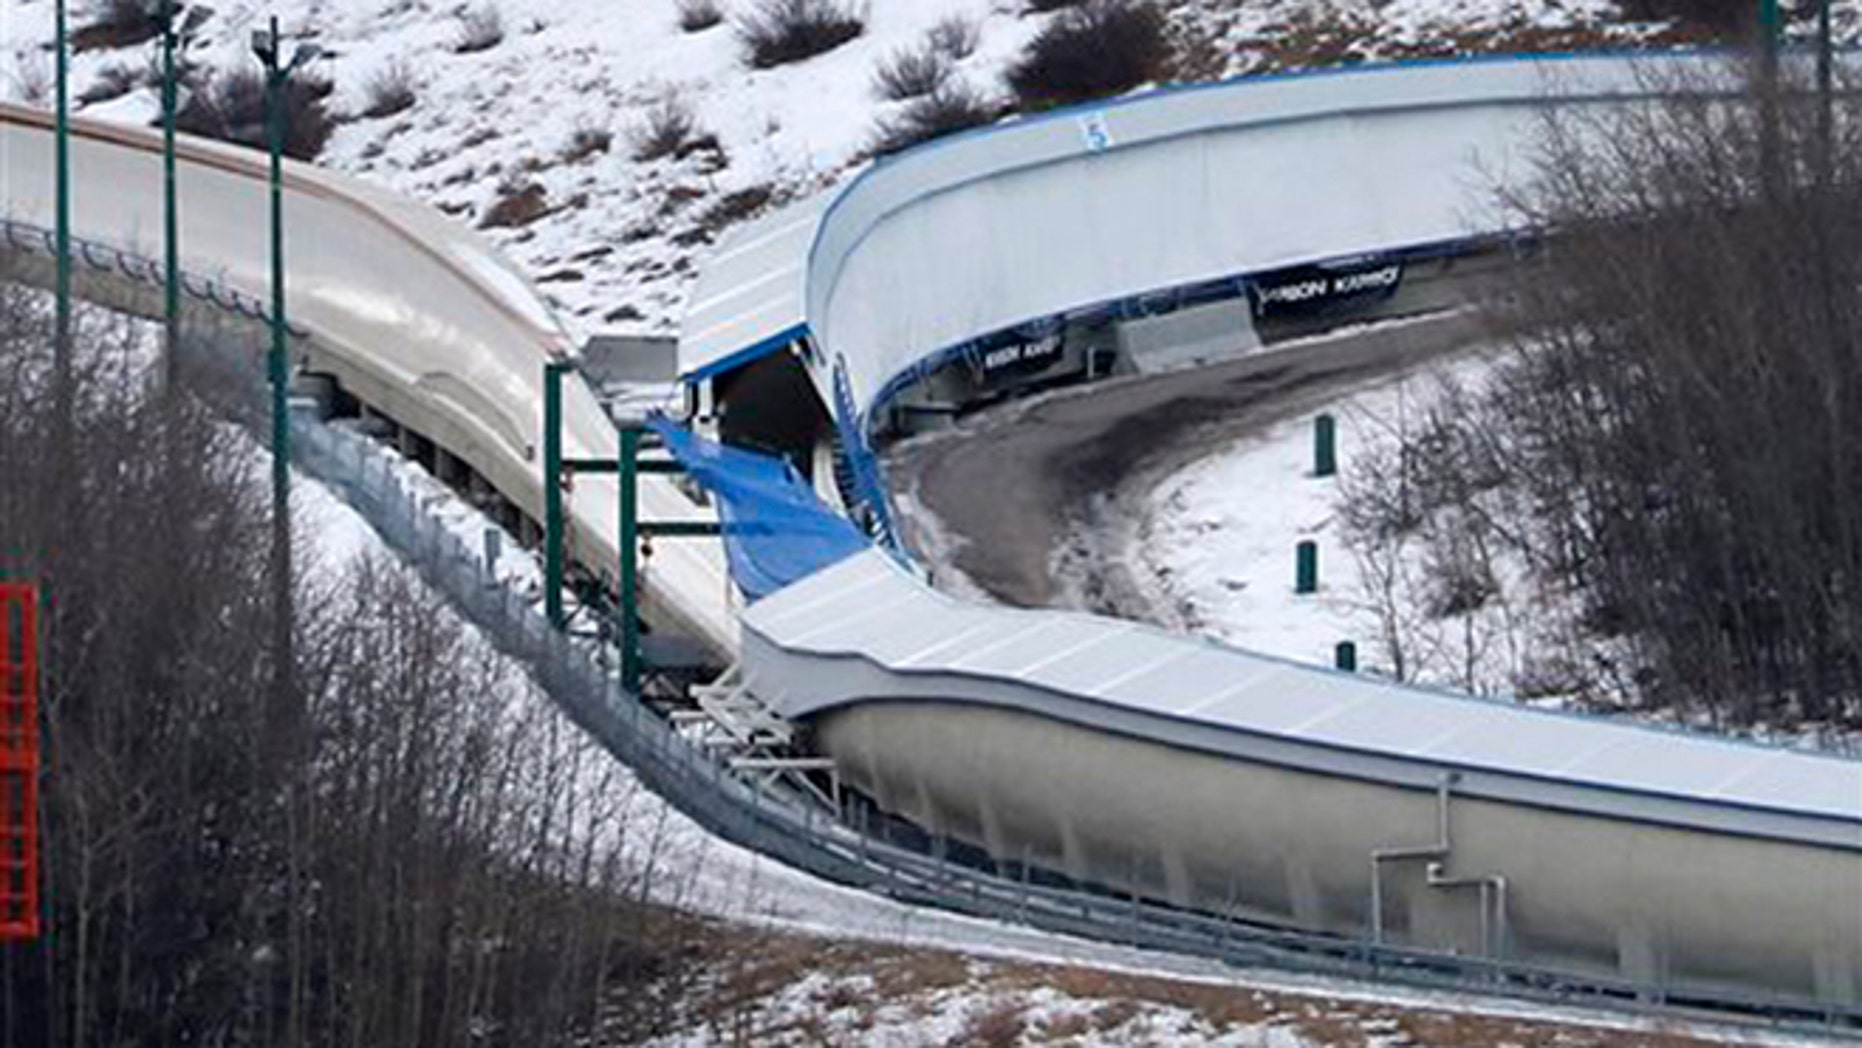 A tarp covers the intersection of the bobsled and luge tracks at Canada Olympic Park in Calgary, Canada, on Saturday, Feb. 6, 2016.  Calgary police say emergency crews were called to the WinSport facility in northwest Calgary early in the morning after a report of several injured people on a closed track.  Eight teenagers, all males, entered the property after hours and used toboggans to go down the bobsled track.  (Larry MacDougal/The Canadian Press via AP) MANDATORY CREDIT